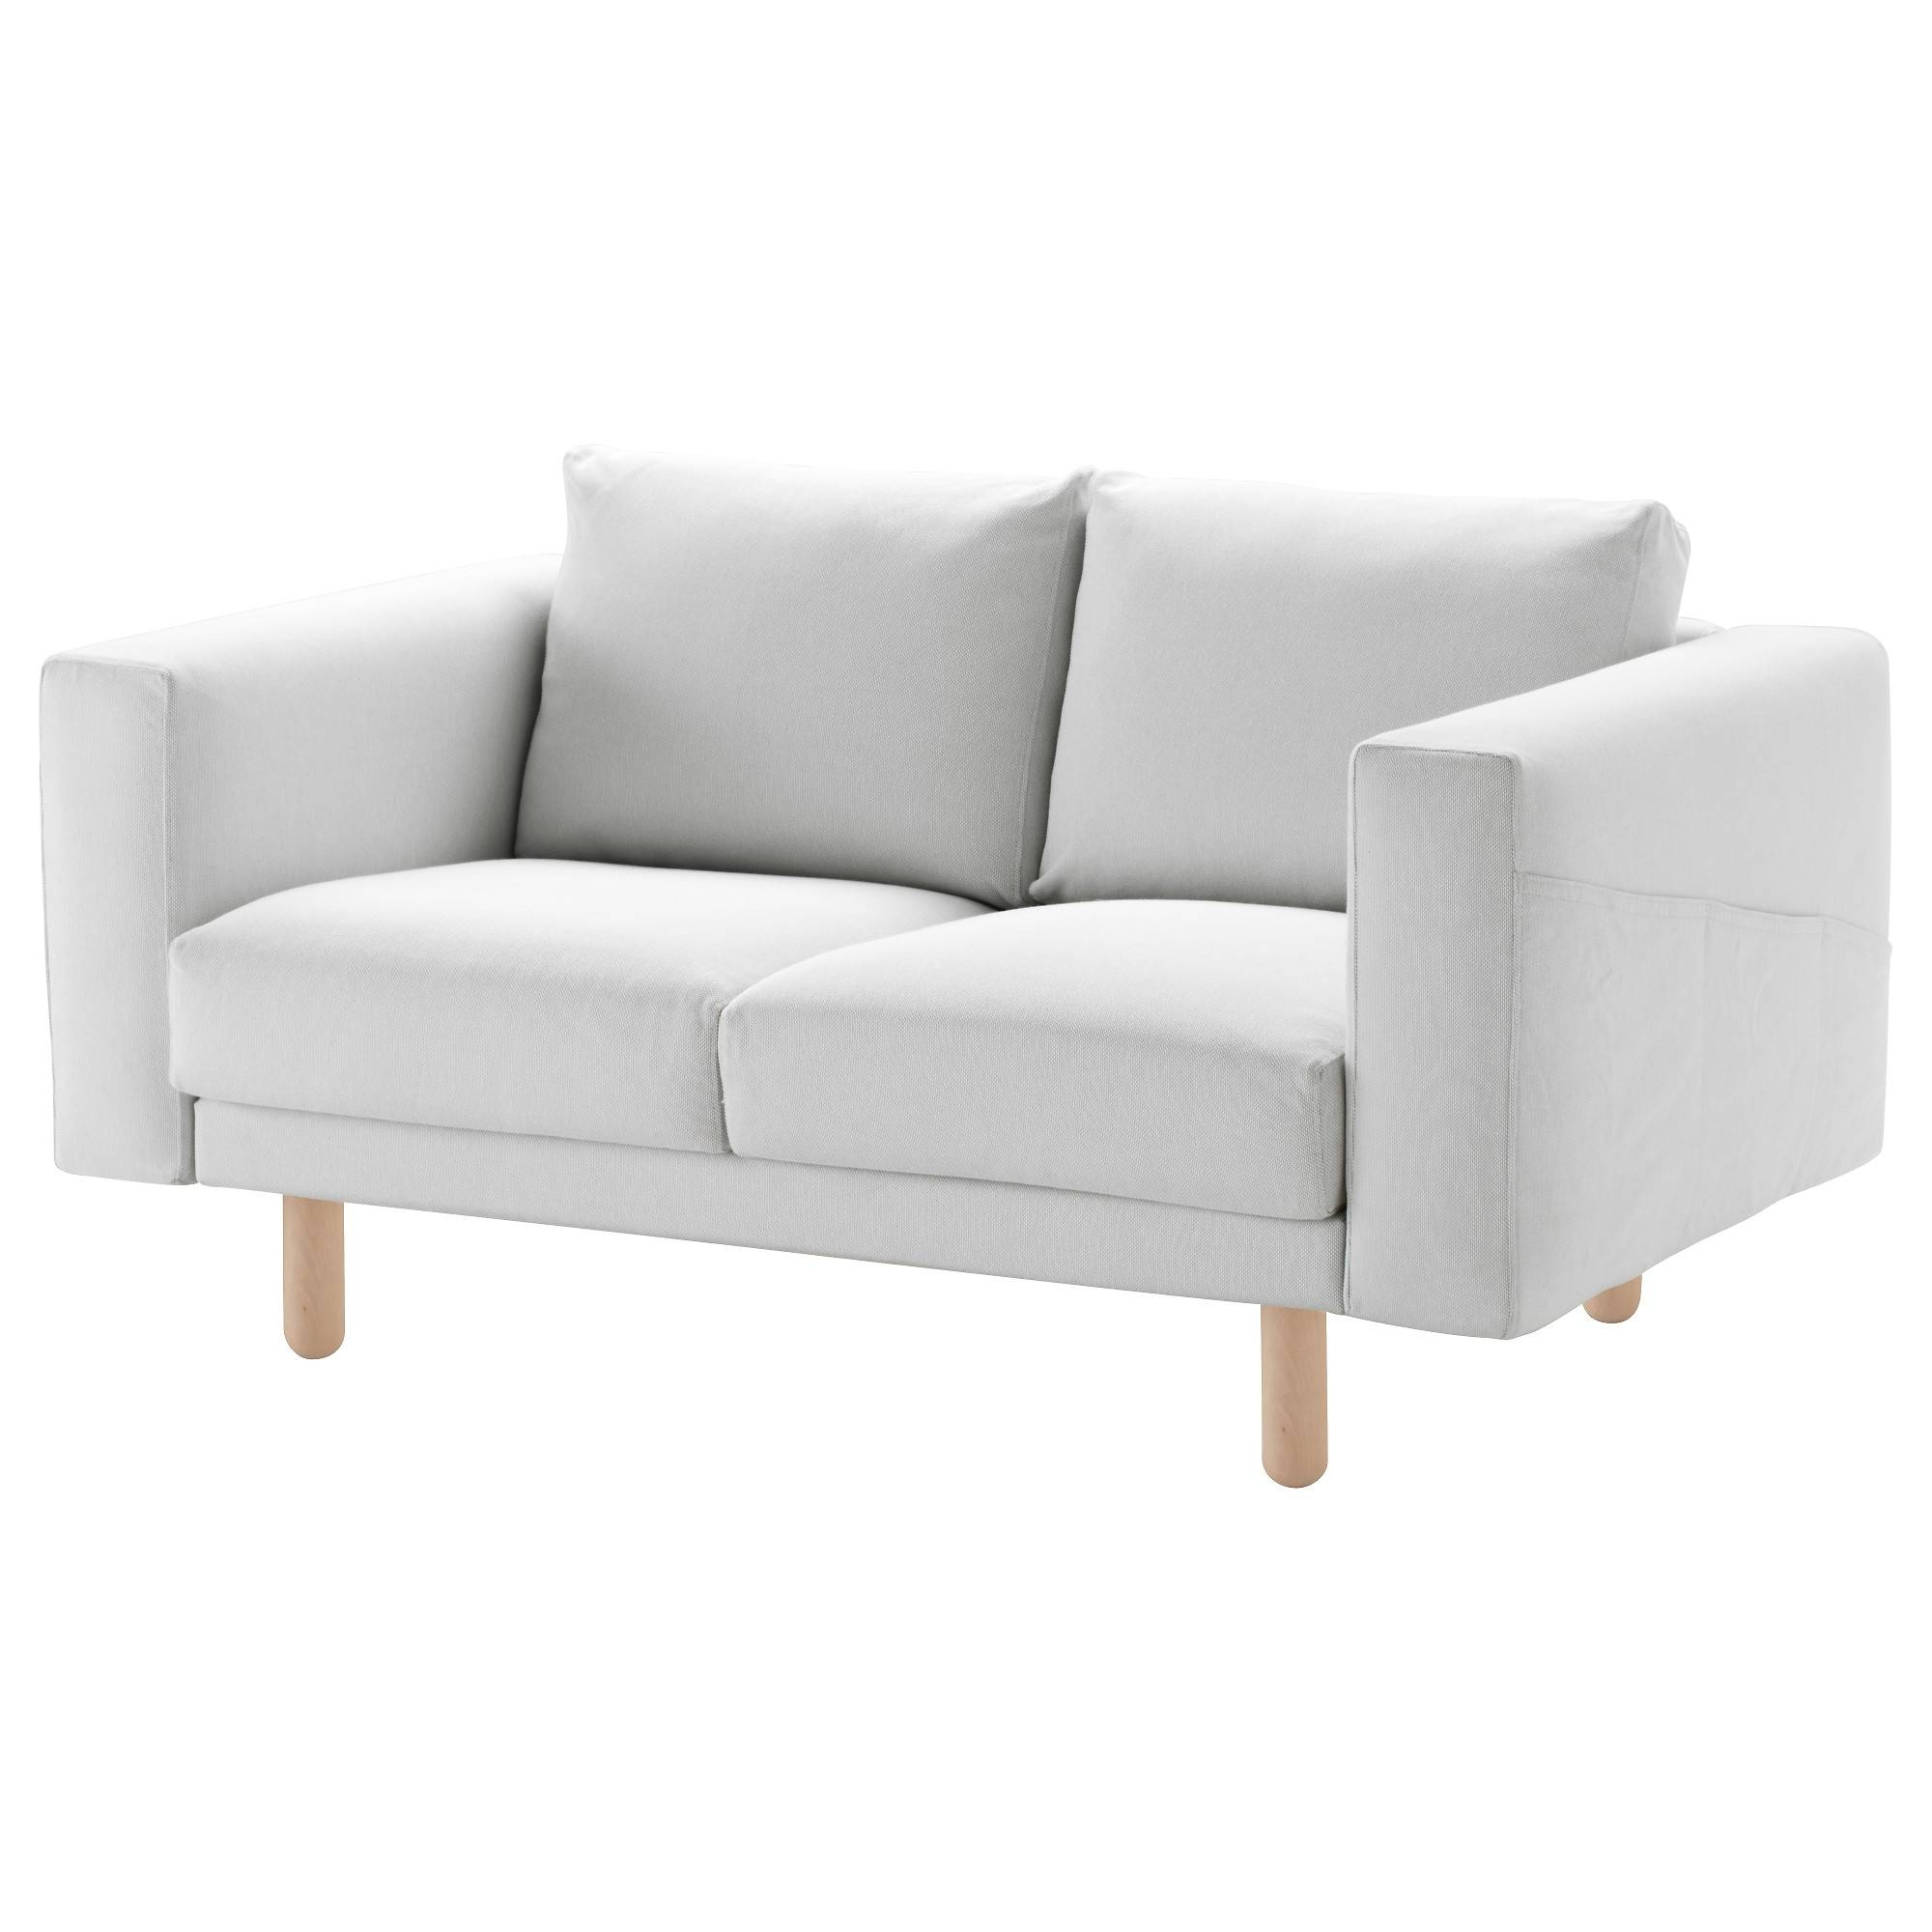 Small Sofas Ikea 54 With Jinanhongyu Intended For